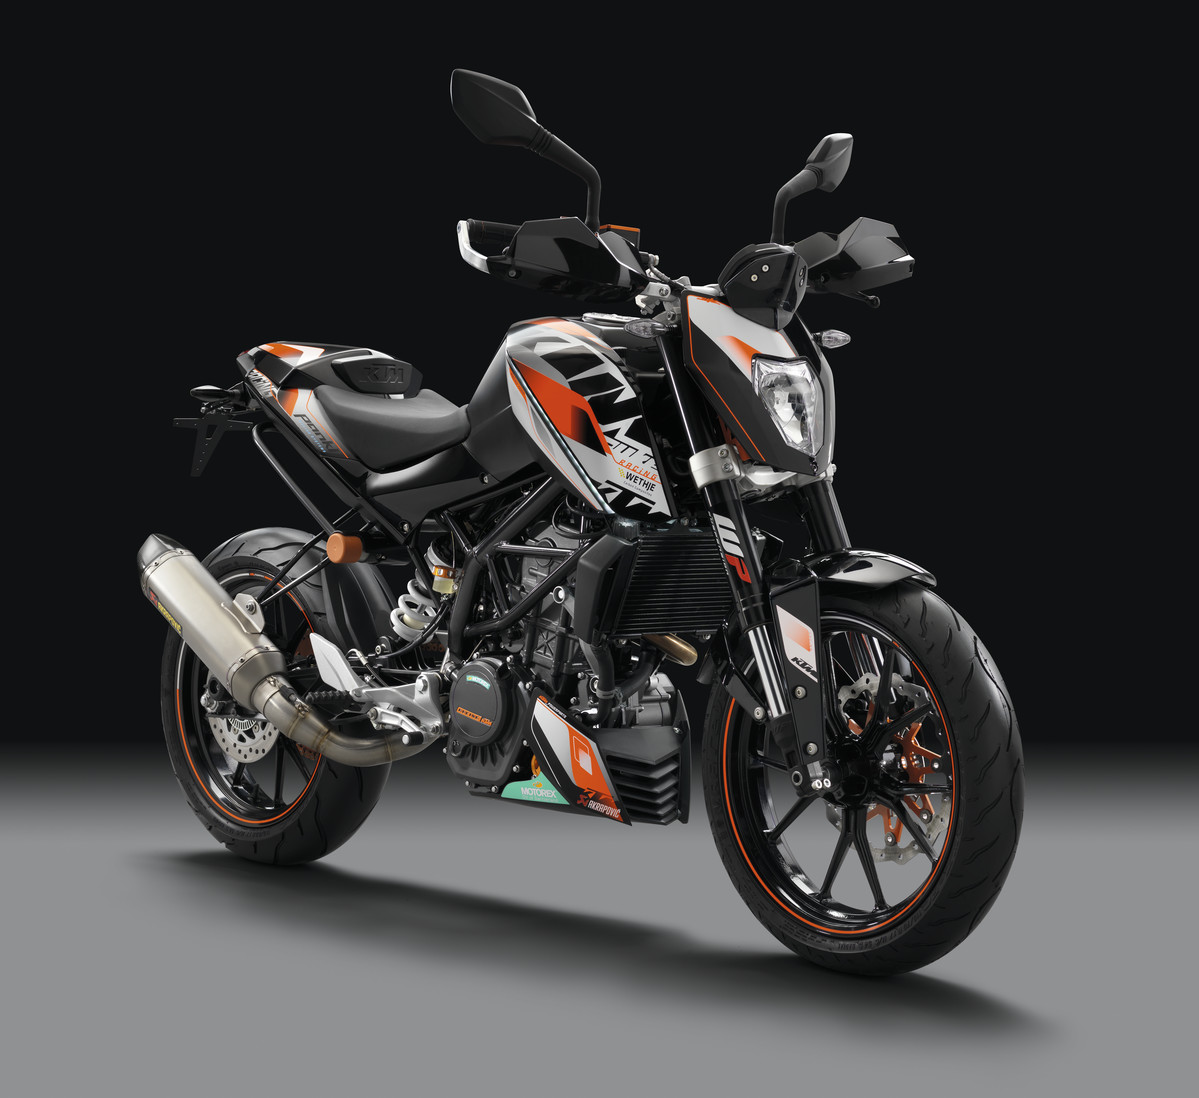 latest ktm duke bikes price,images,mileage,modelsetc2016